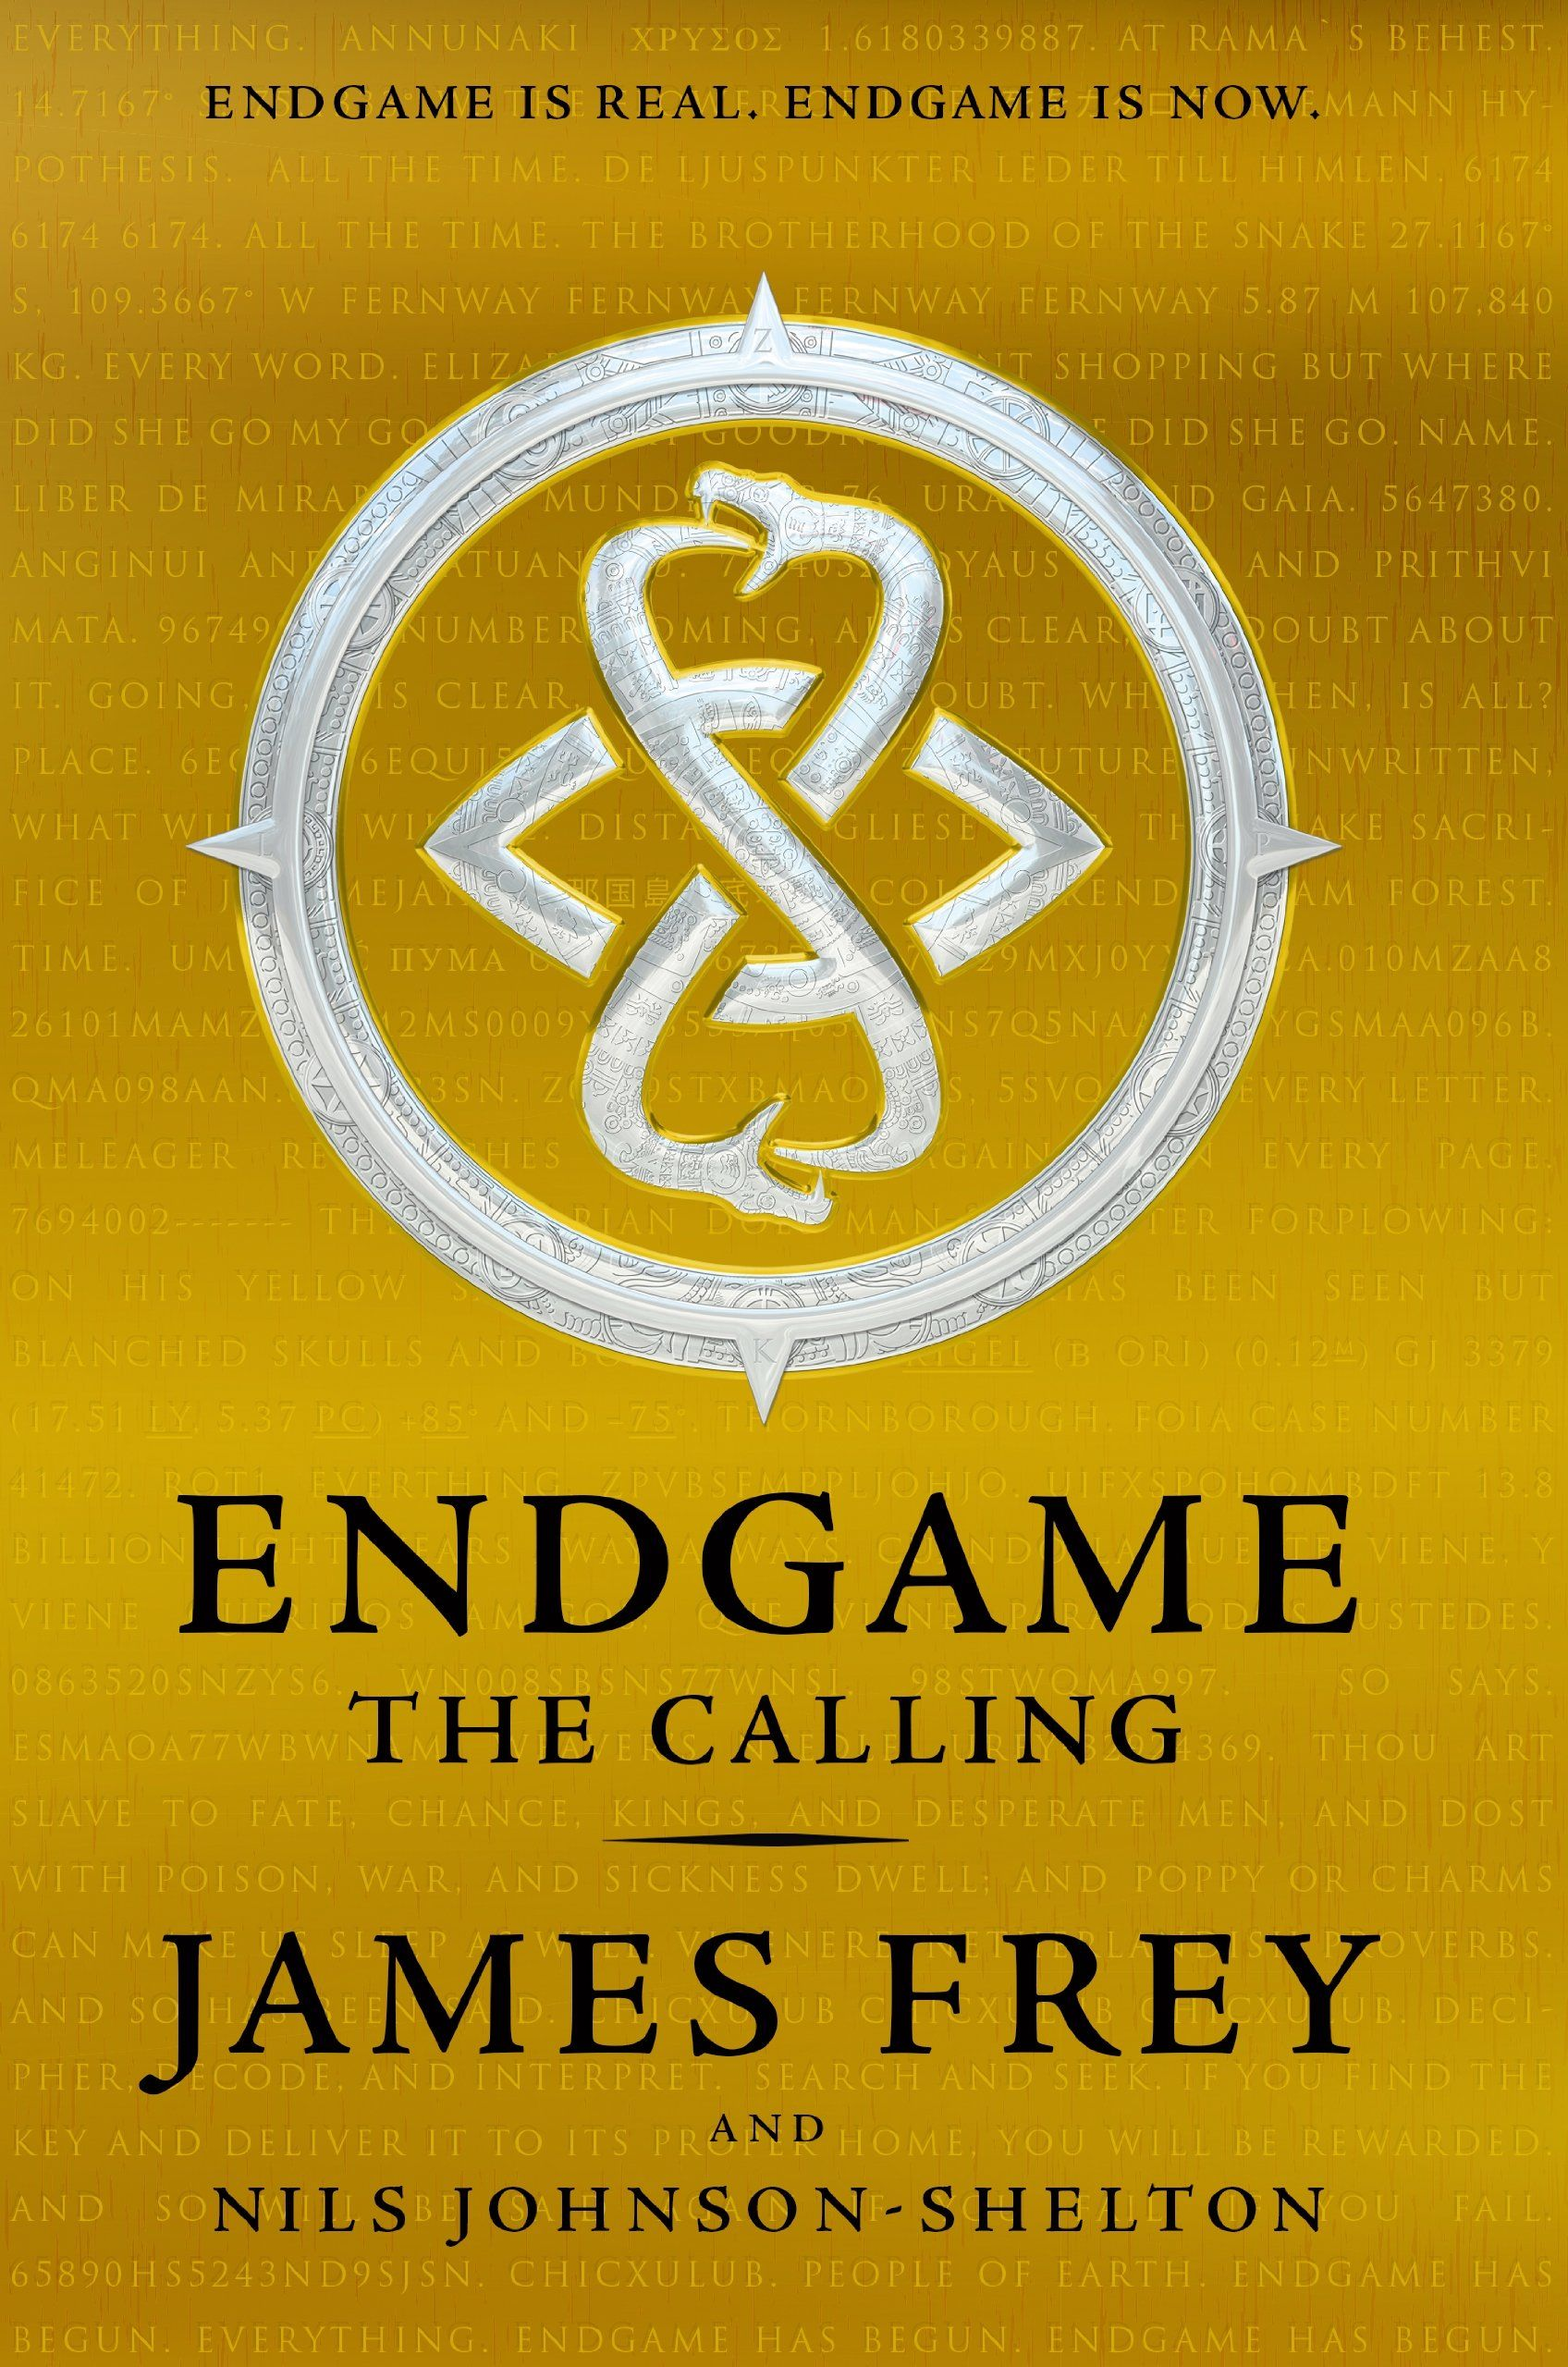 ENDGAME 1  THE CALLING